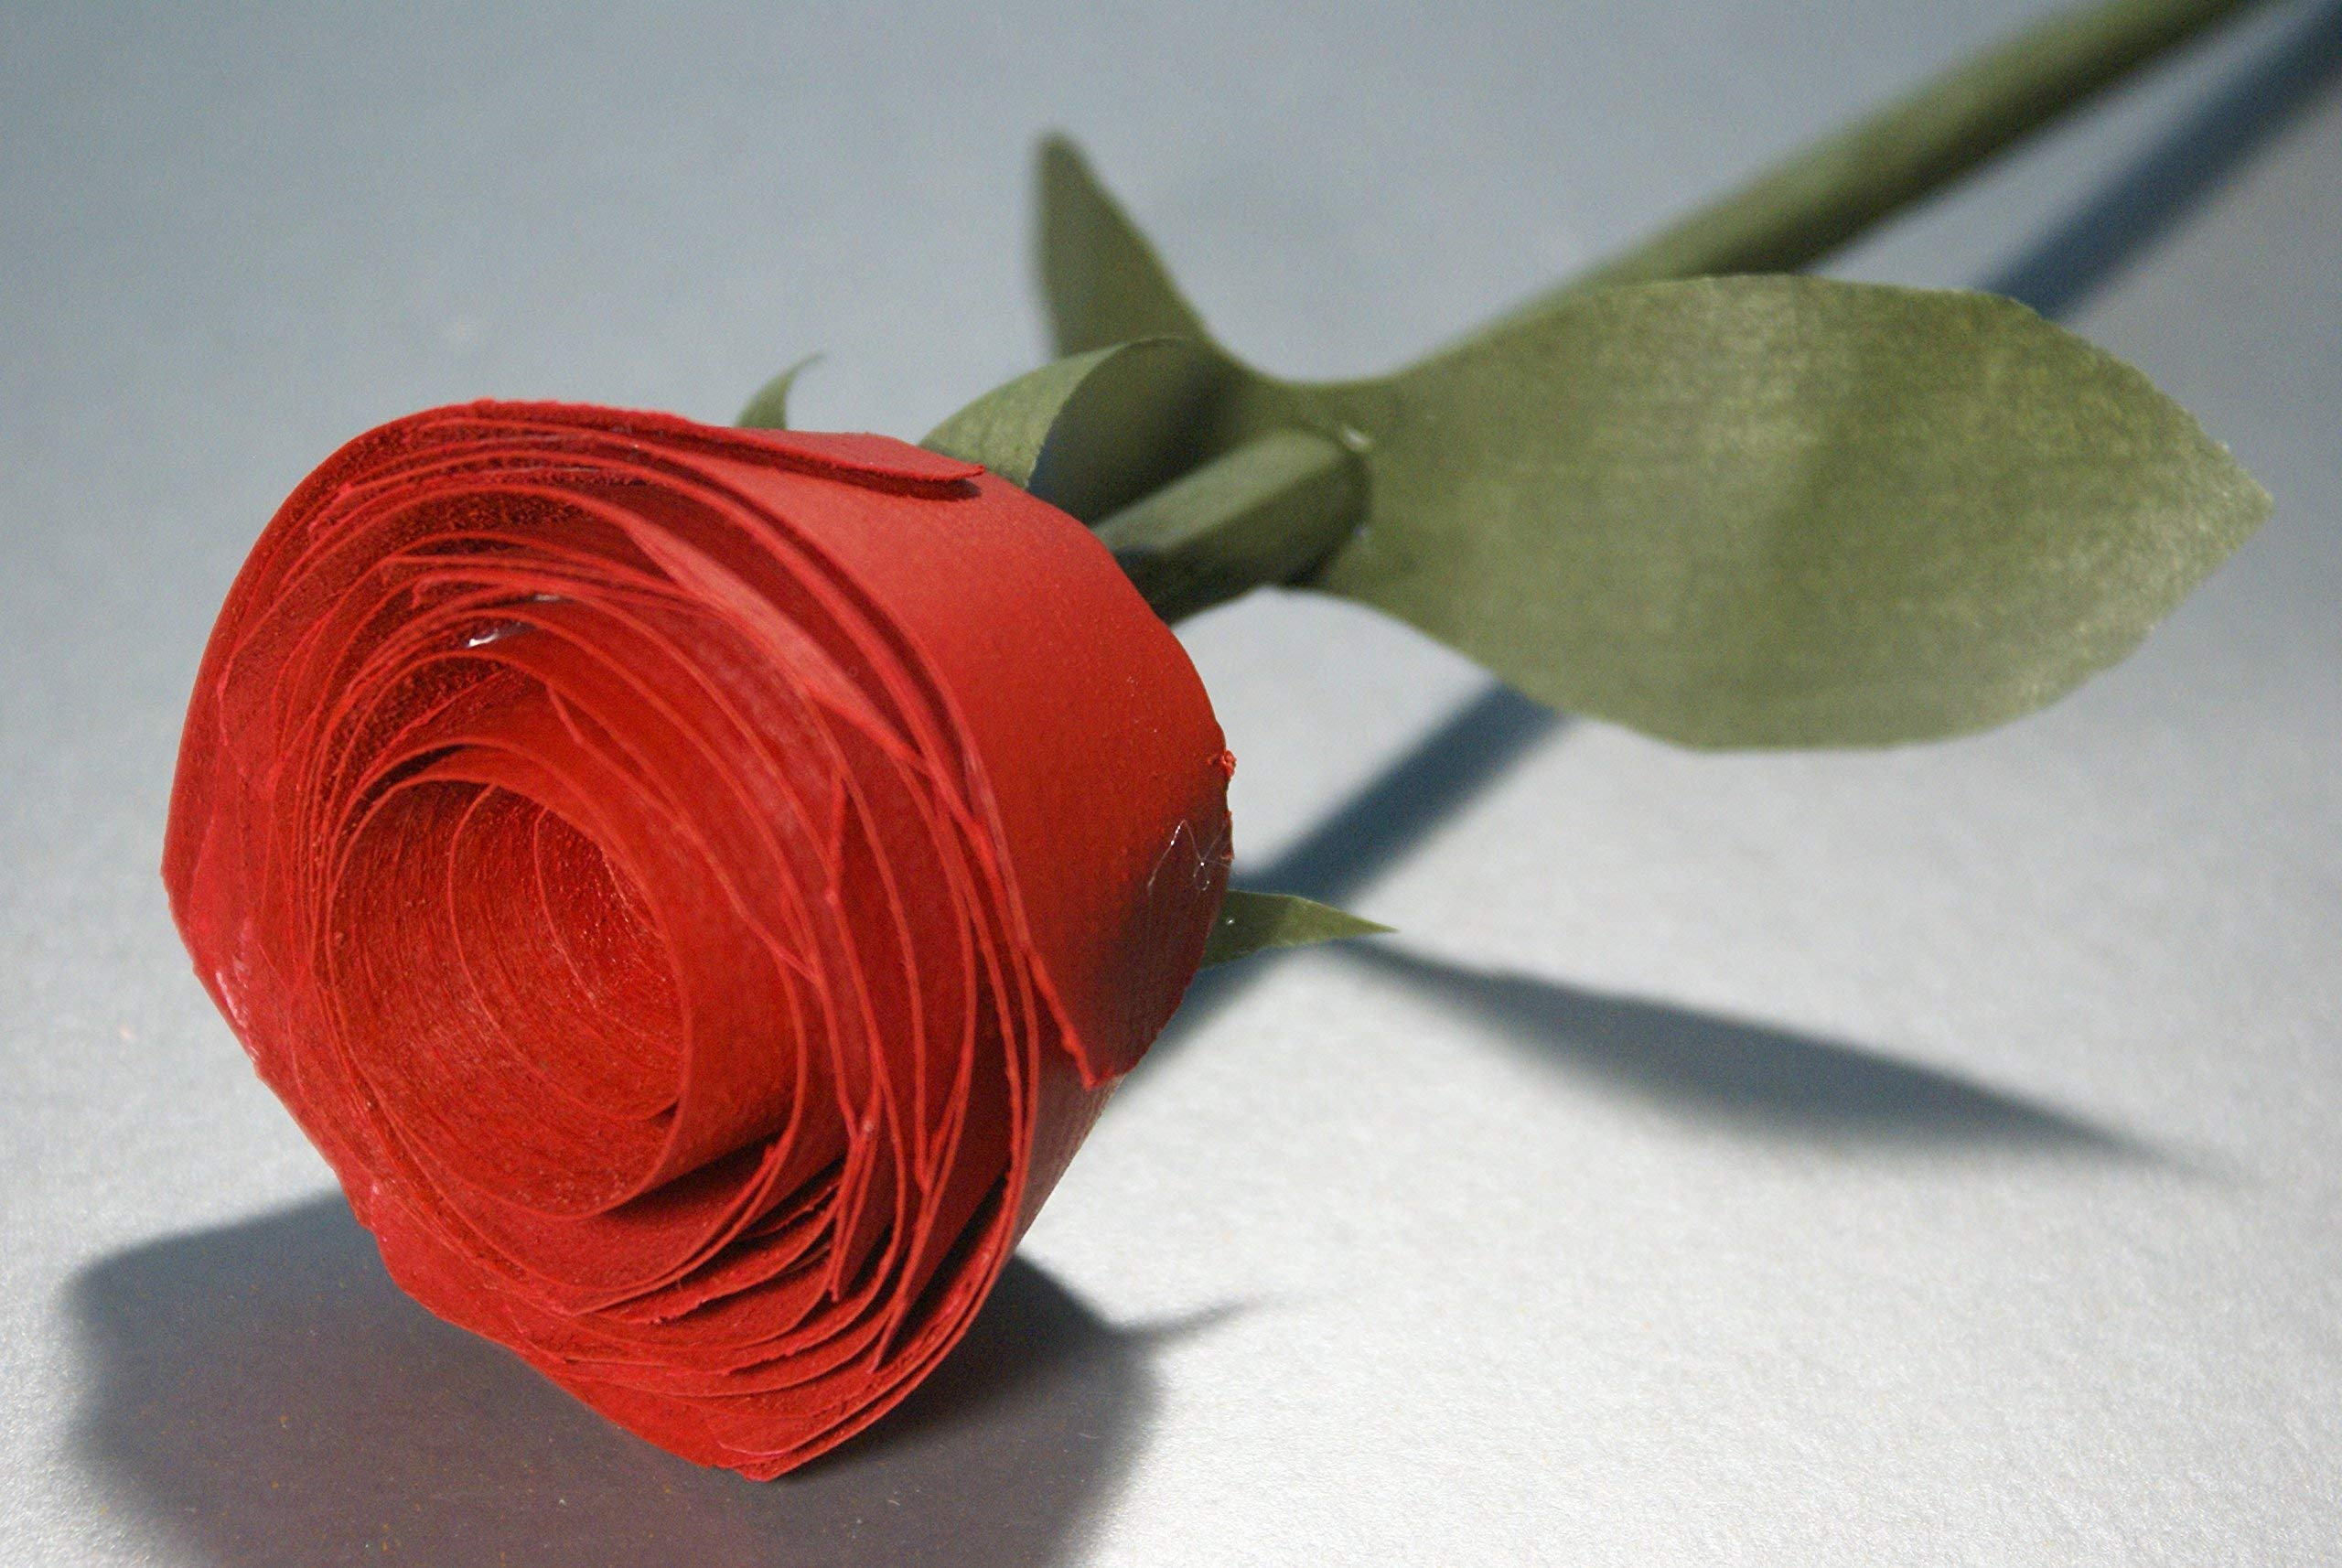 VALENTINES-DAY-Wooden-red-rose-handmade-for-5-Year-Anniversary-Romantic-gift-for-her-Birthday-flower-Thank-you-gift-Get-well-soon-present